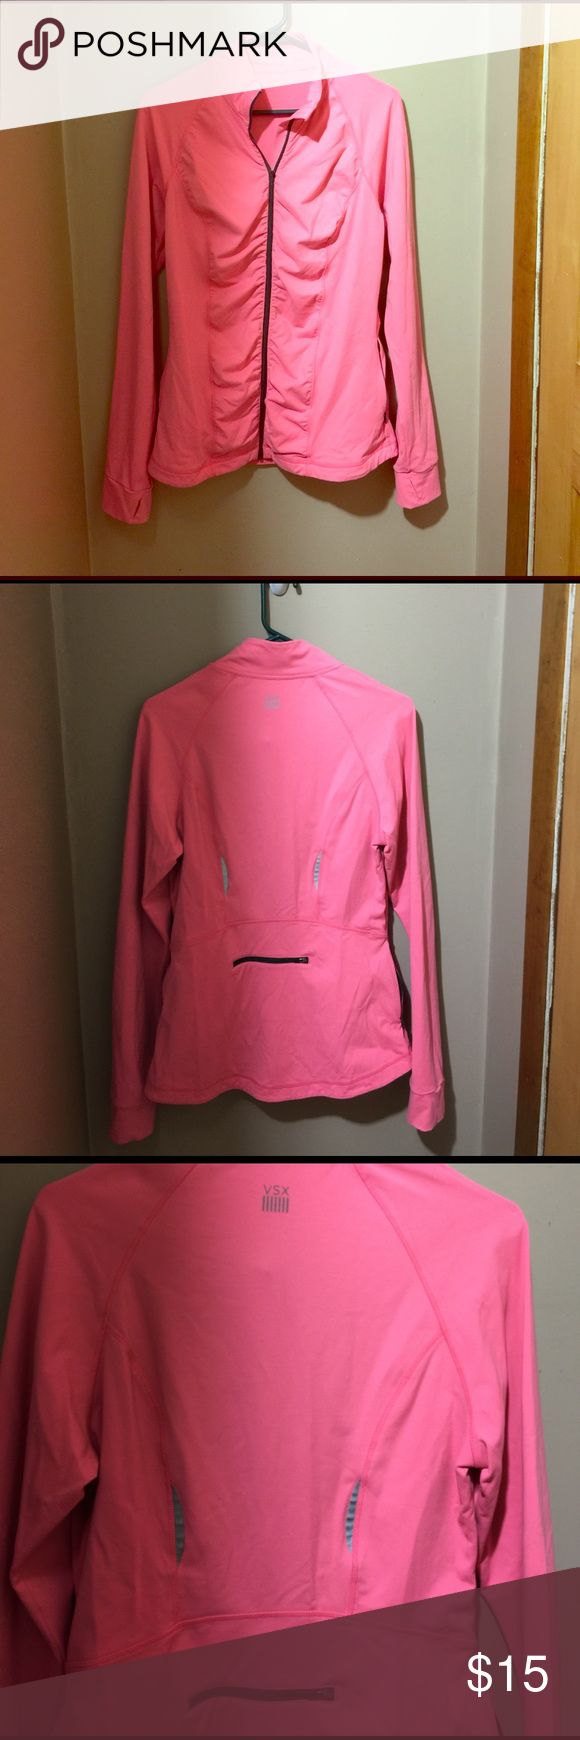 VSX zipper back workout zip up! Gently used, and very fitting to curves! Victoria's Secret Tops Sweatshirts & Hoodies